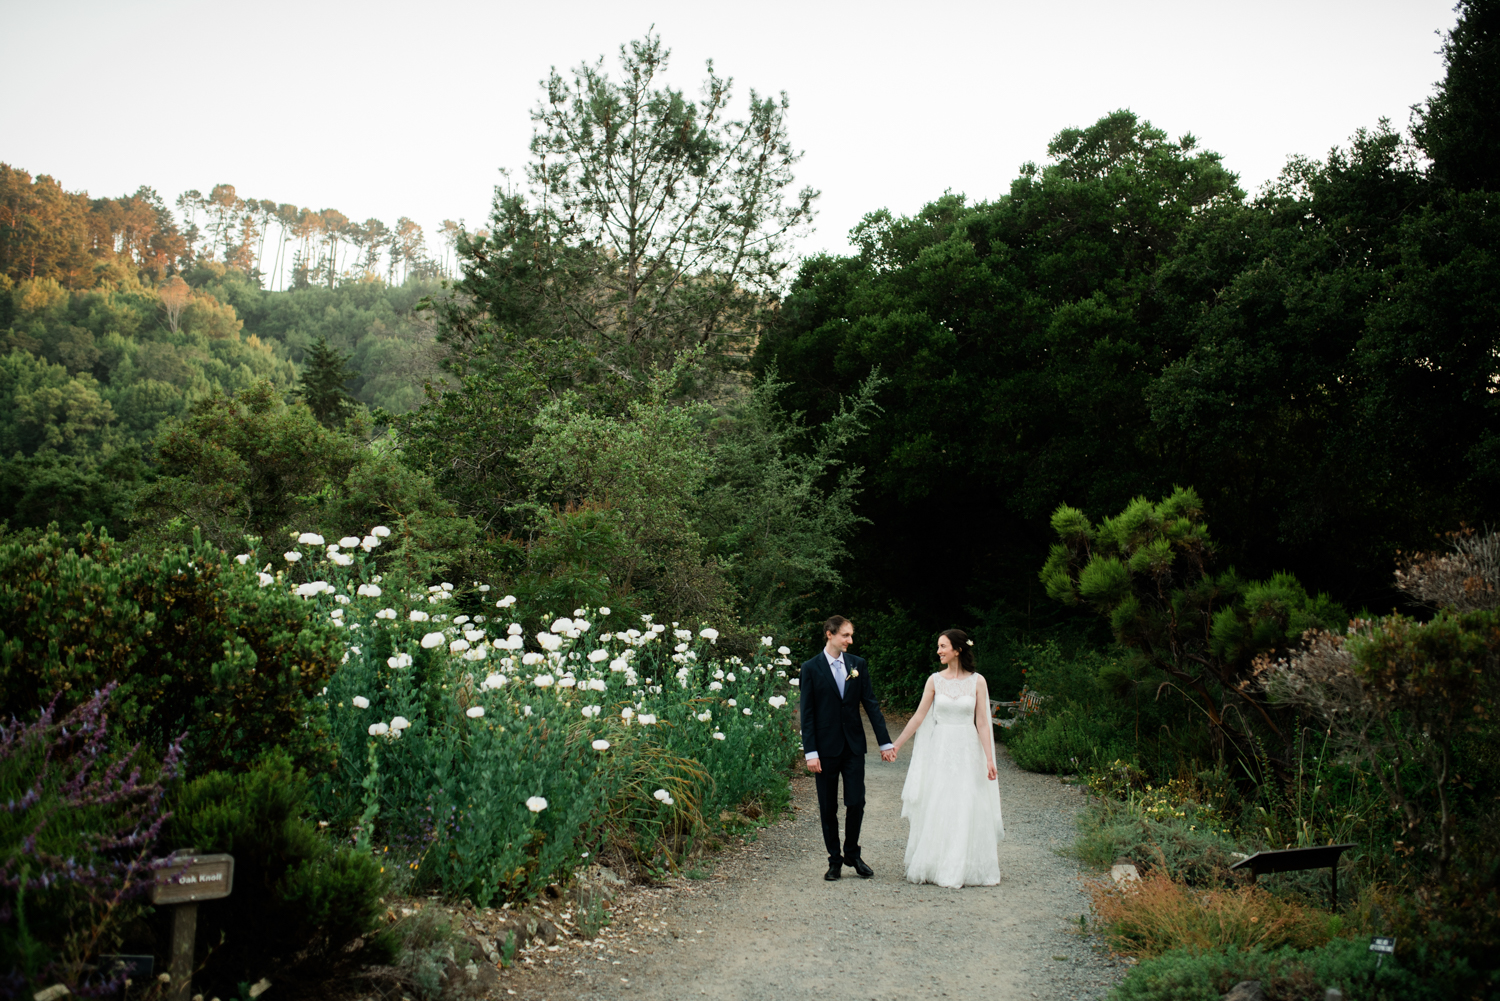 UC_Berkeley_Botanical_Garden_Wedding_ChristinaRichards_047.jpg